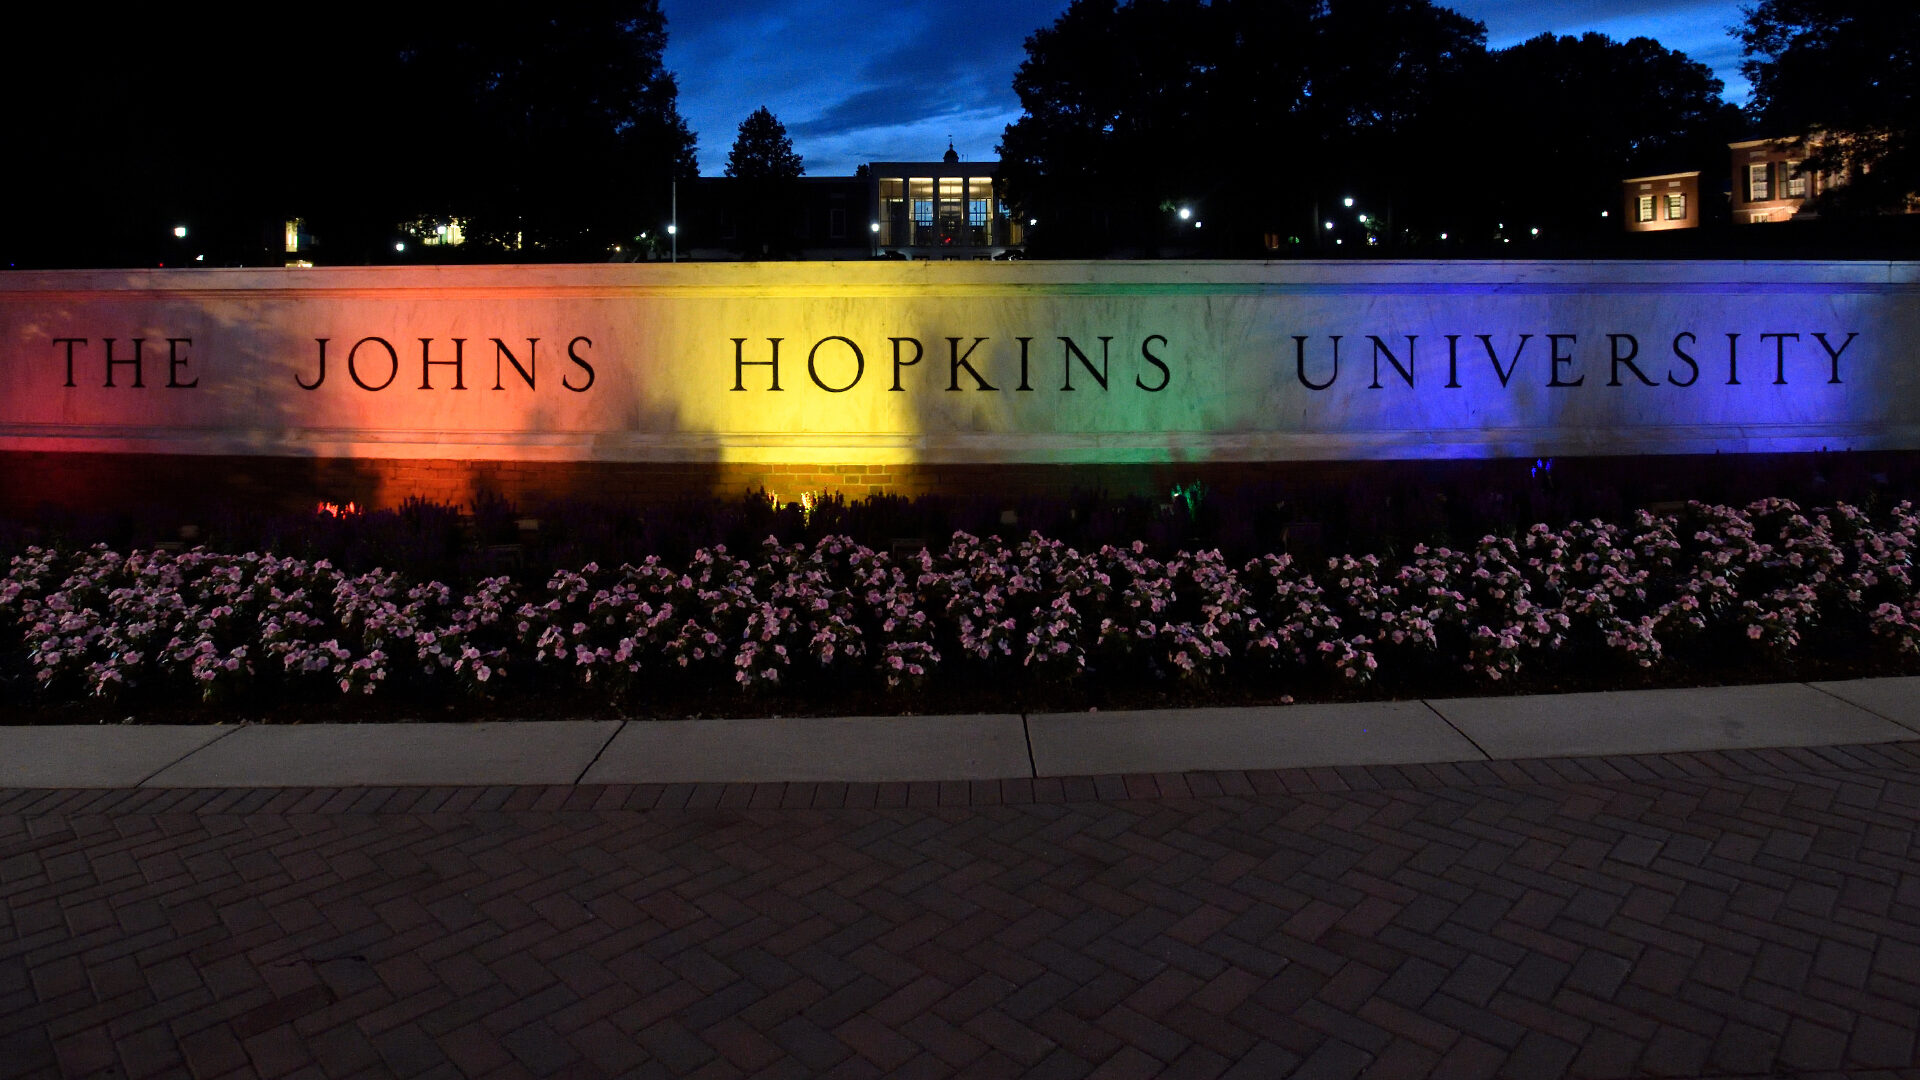 Colorful lights are shining on the Johns Hopkins University sign.